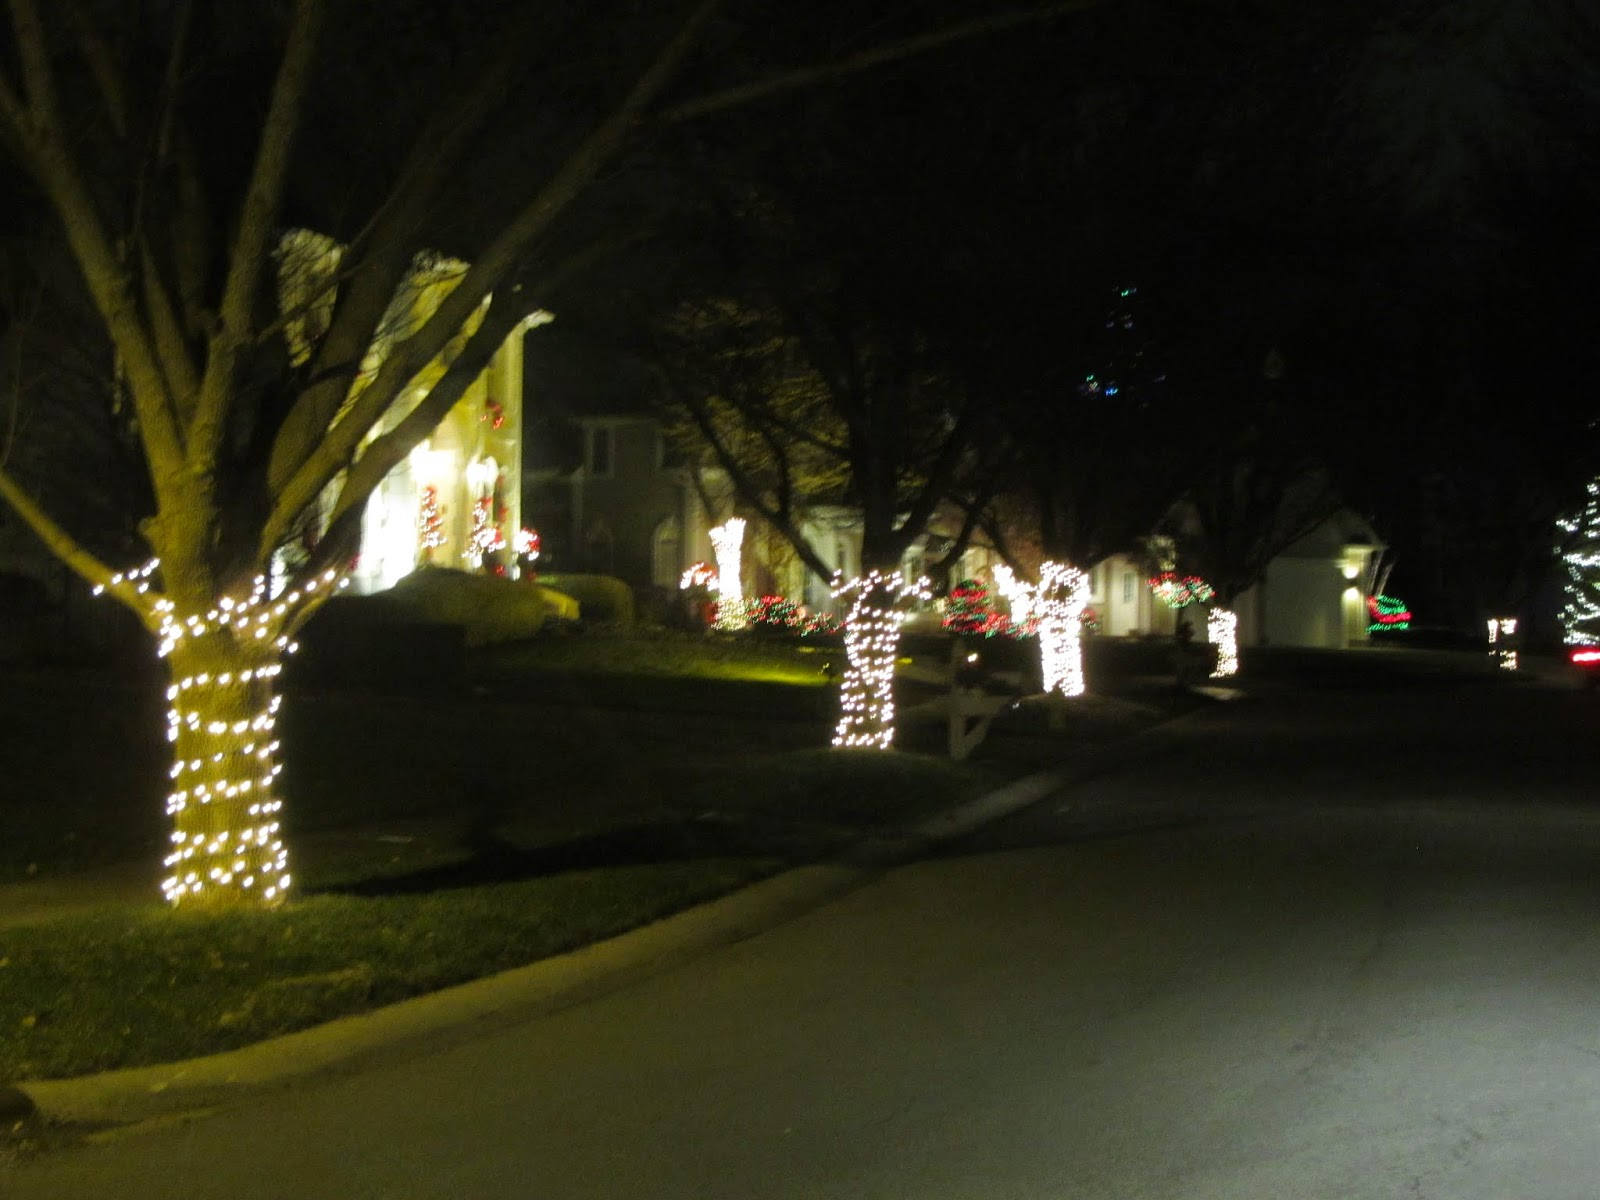 Night lights james dobson - They Had Lights Around The Bottom Of All The Trees That Lined The Sidewalks The Pictures Doesn T Do It Justice It Looked Like Something You Would See In A